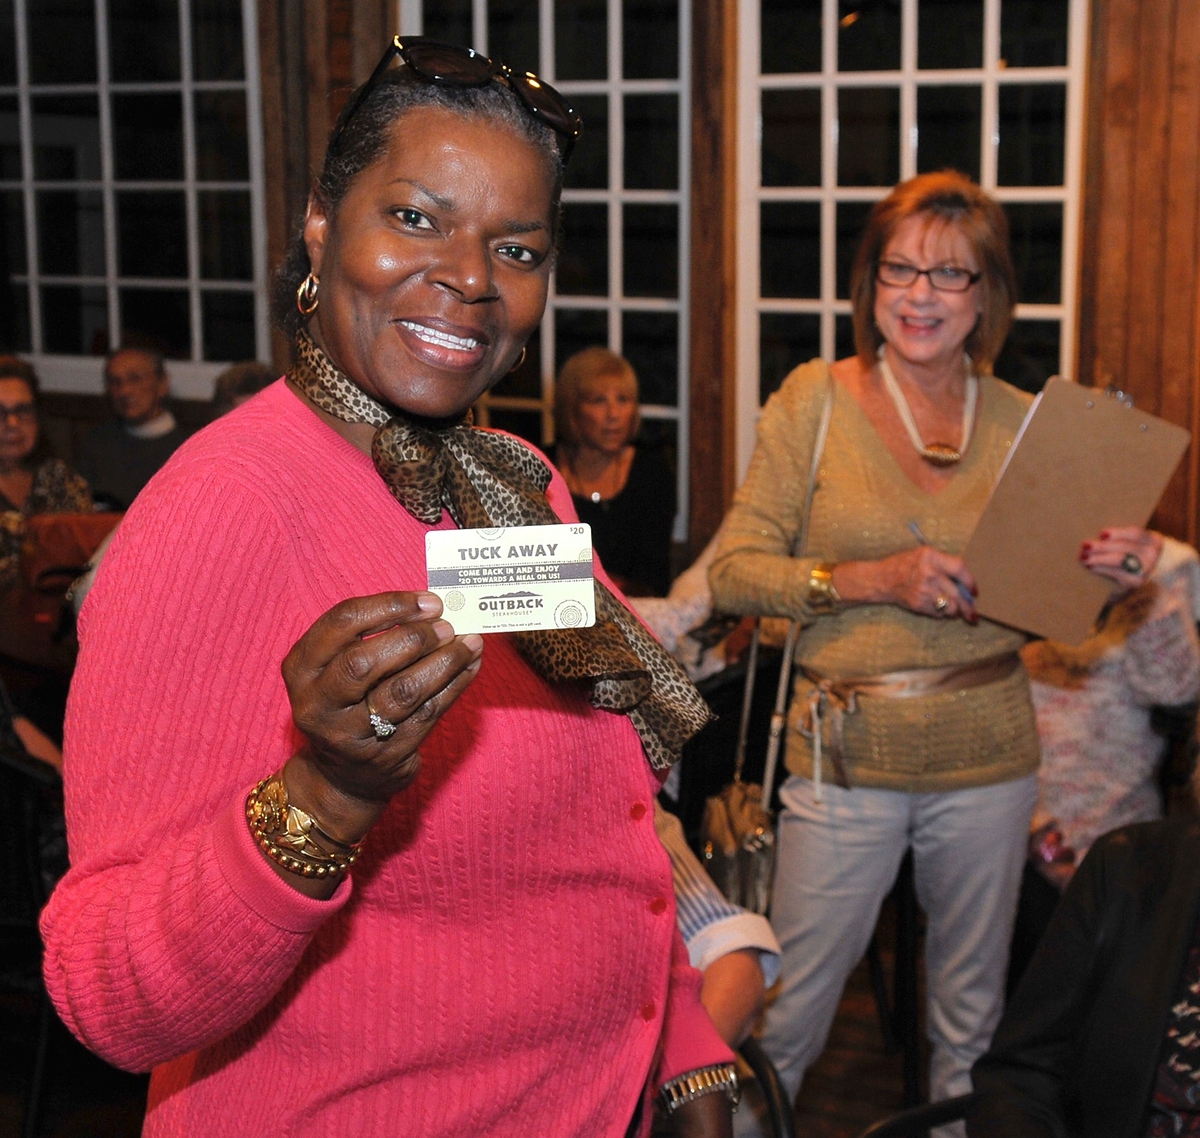 Patricia Gadsden continued her lucky streak by winning another door prize from Outback. Gadsden said she has won a door prize each time she has attended Island Girls Night Out.